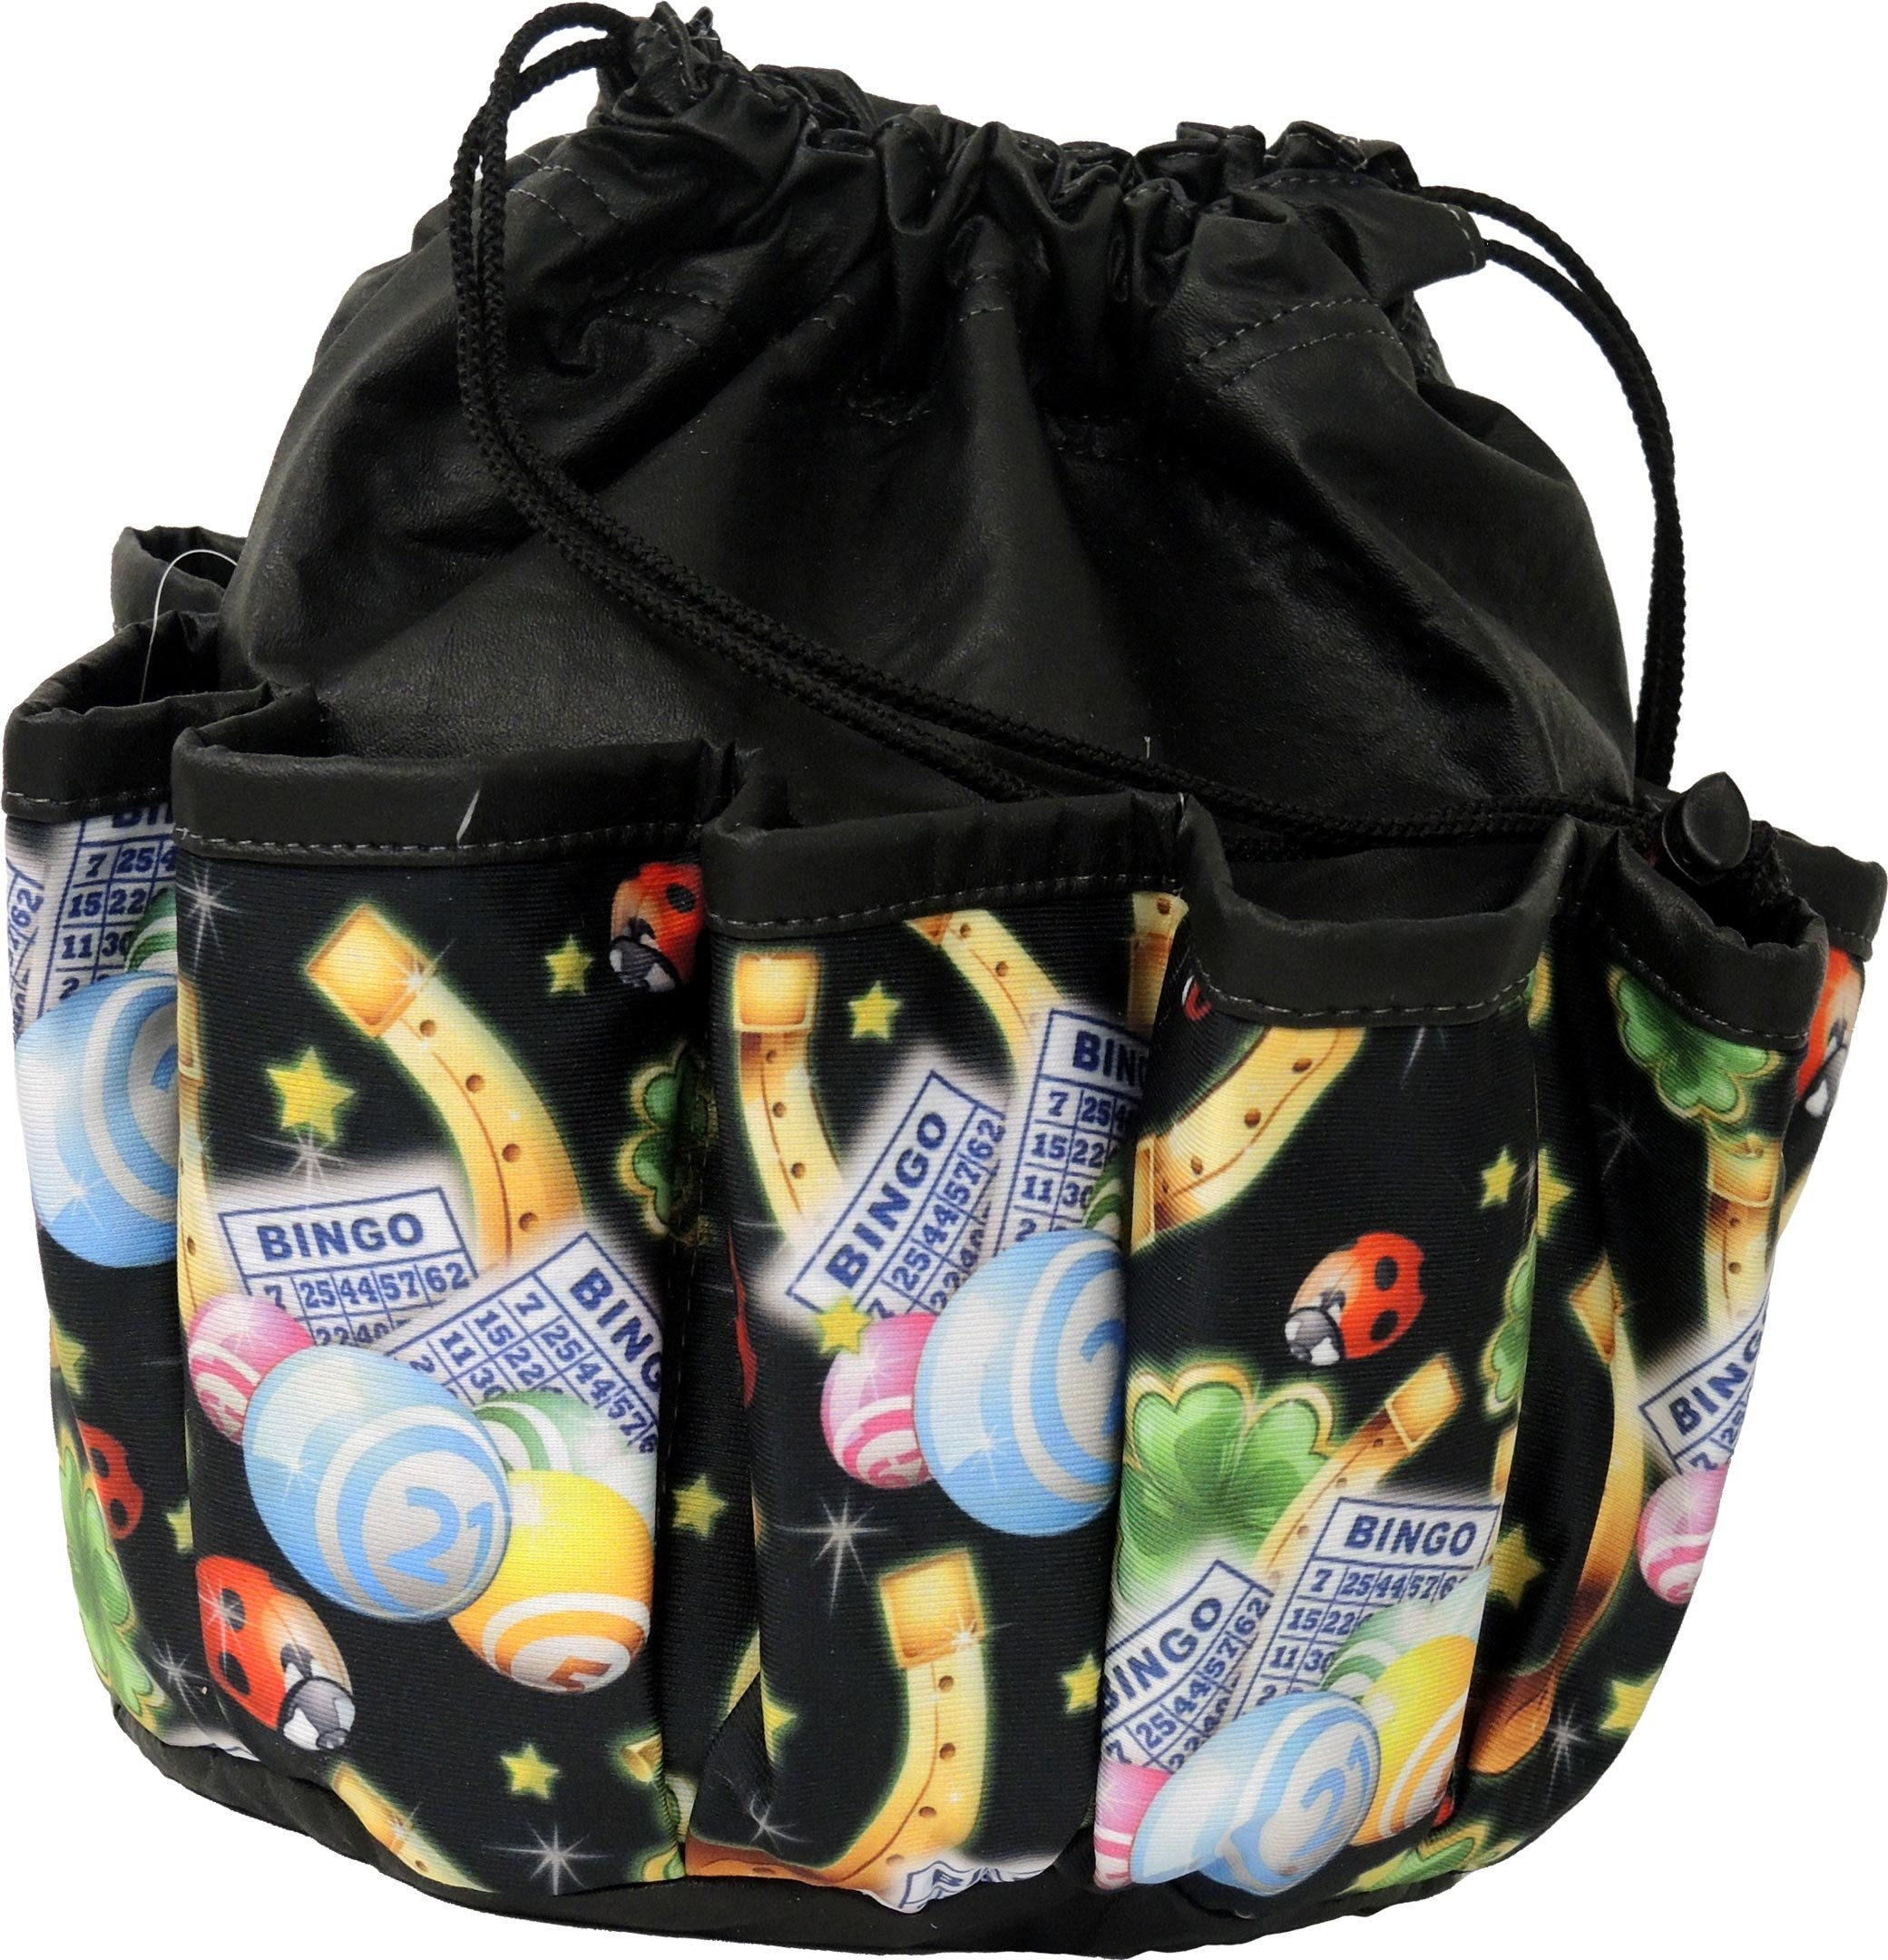 Nannicola Lucky Charms 10-pocket Dauber Bag Vinyl Black